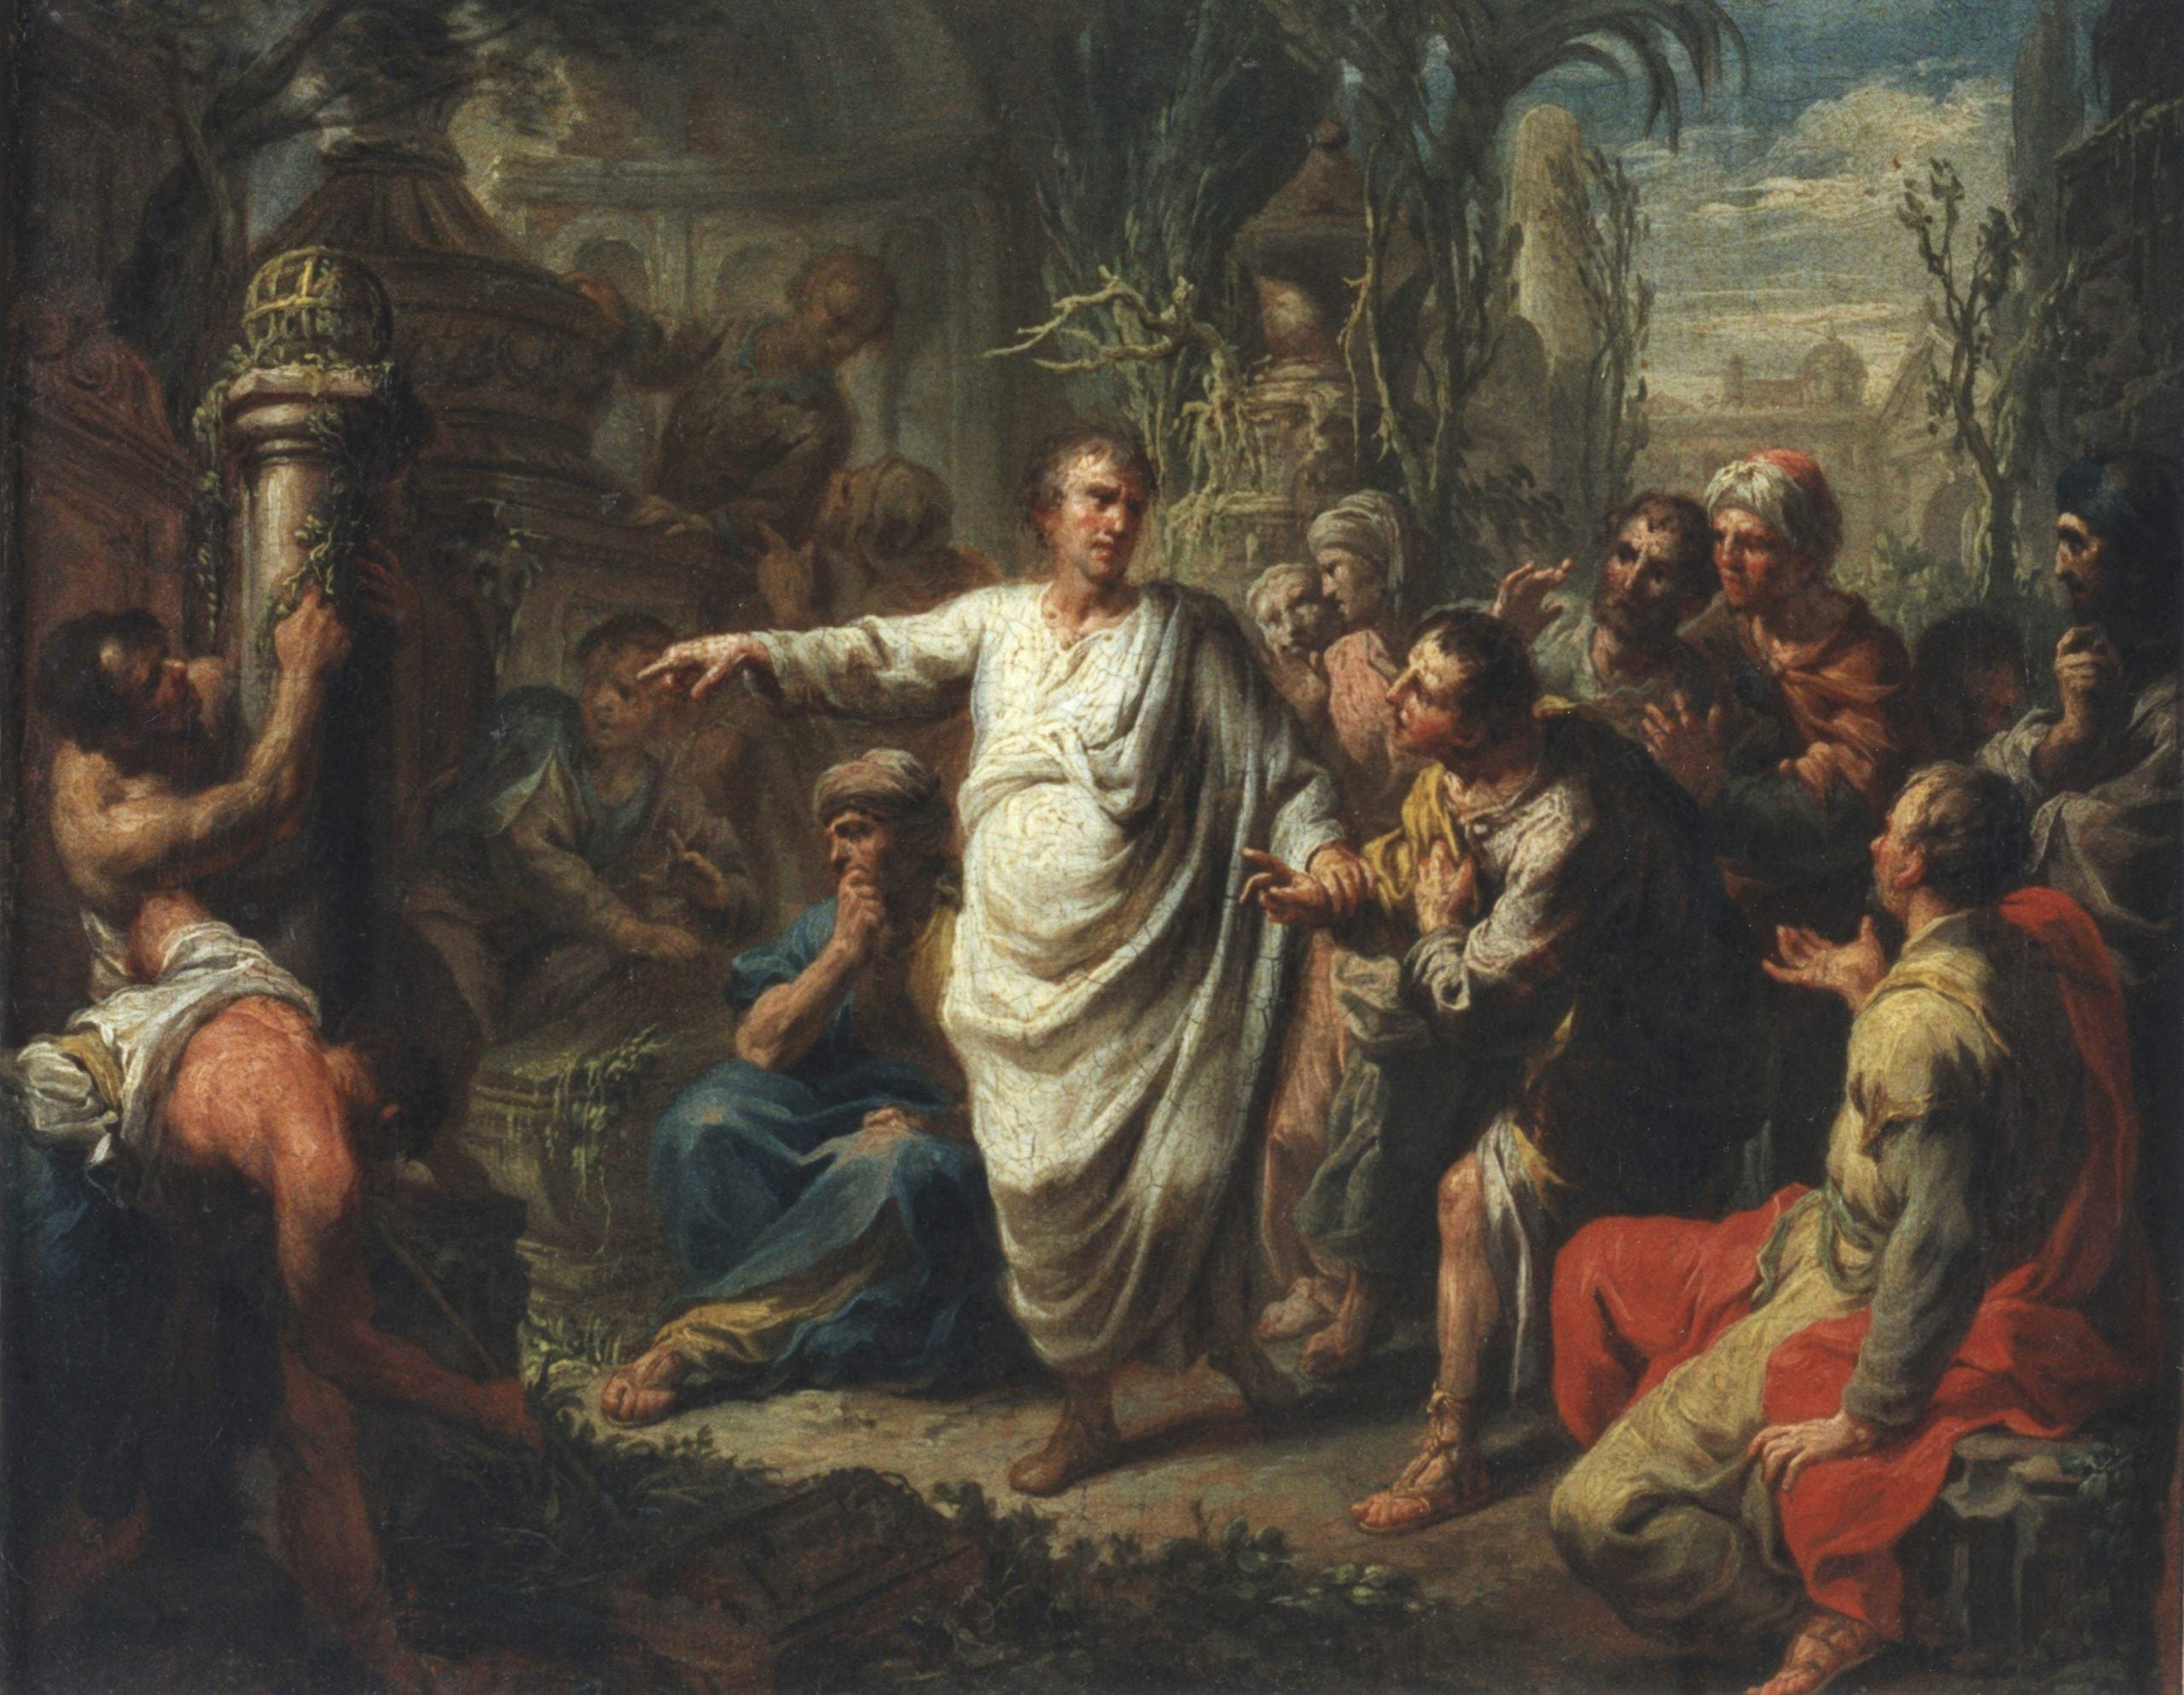 End of an orator: the ancient Roman machinations of Robert Harris's Dictator